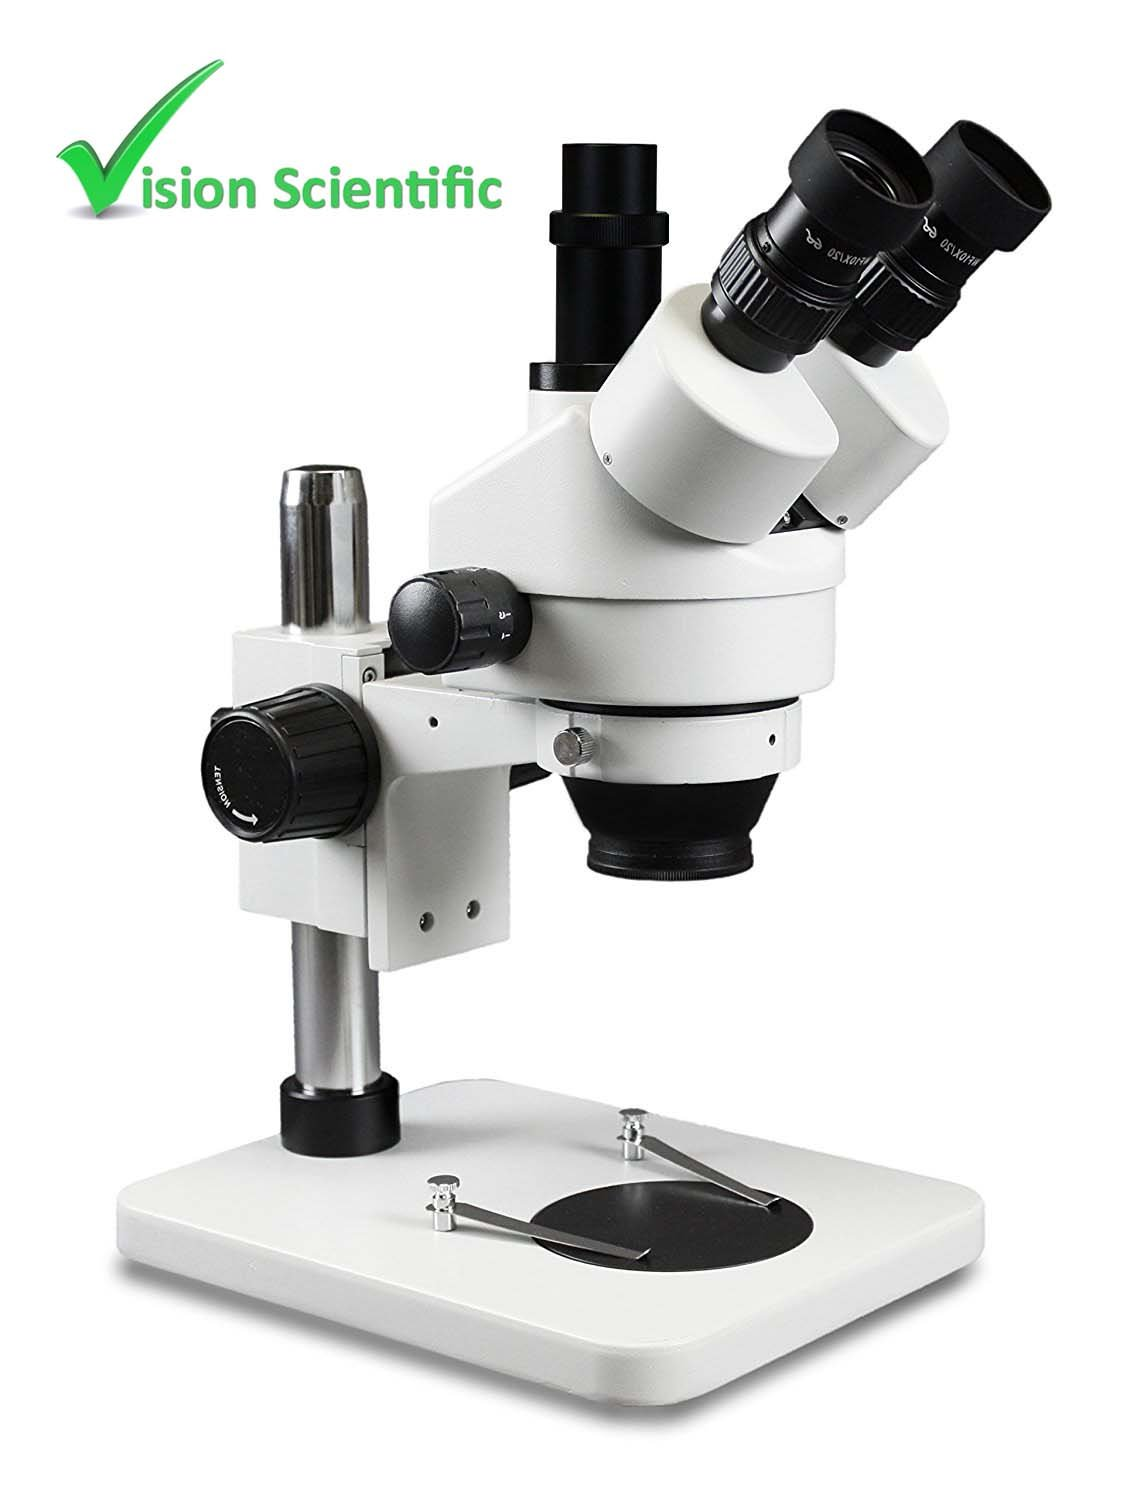 Vision Scientific VS-1FZ Simul-Focal Trinocular Zoom Stereo Microscope, Paired 10x Widefield Eyepiece, 0.7X-4.5X Zoom Range, 3.5X-90x Magnification Range, 0.5X & 2X Auxiliary Lens, Pillar Stand by Vision Scientific